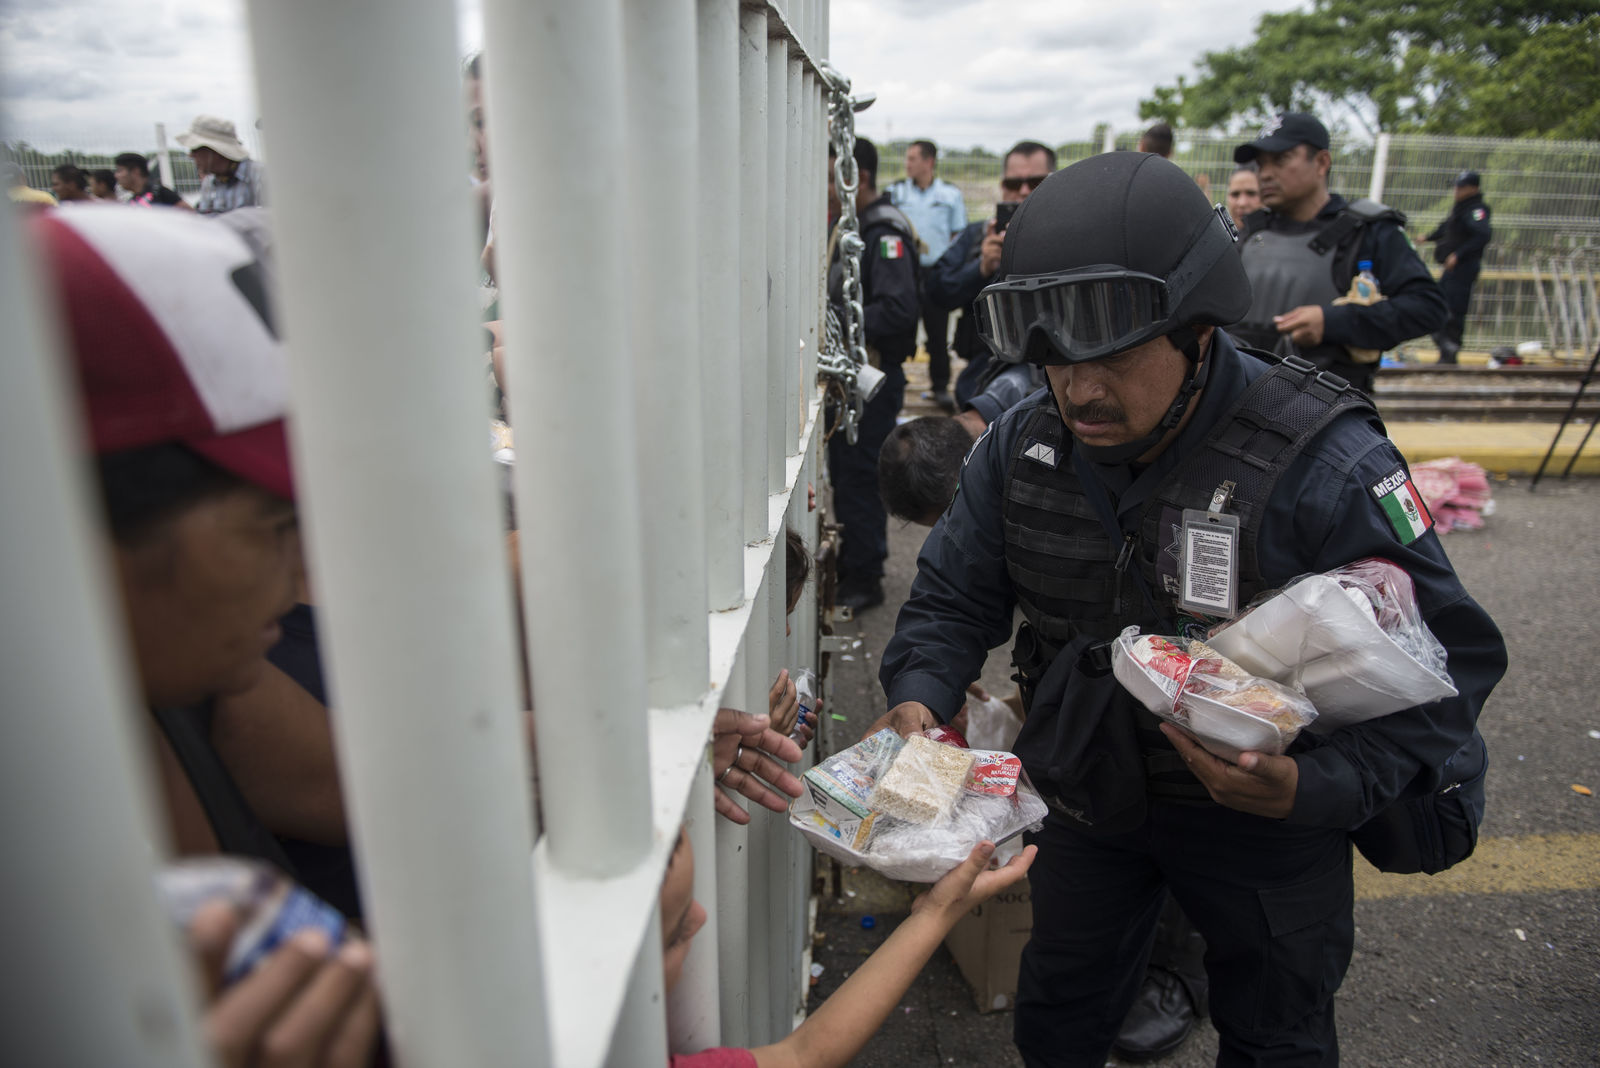 A Mexican Federal Police officer hands out food to Honduran migrants stuck in no man's land on the bridge over the Suchiate River that is the border between Guatemala and Mexico, near Ciudad Hidalgo, Mexico, Saturday, Oct. 20, 2018. (AP Photo/Oliver de Ros)